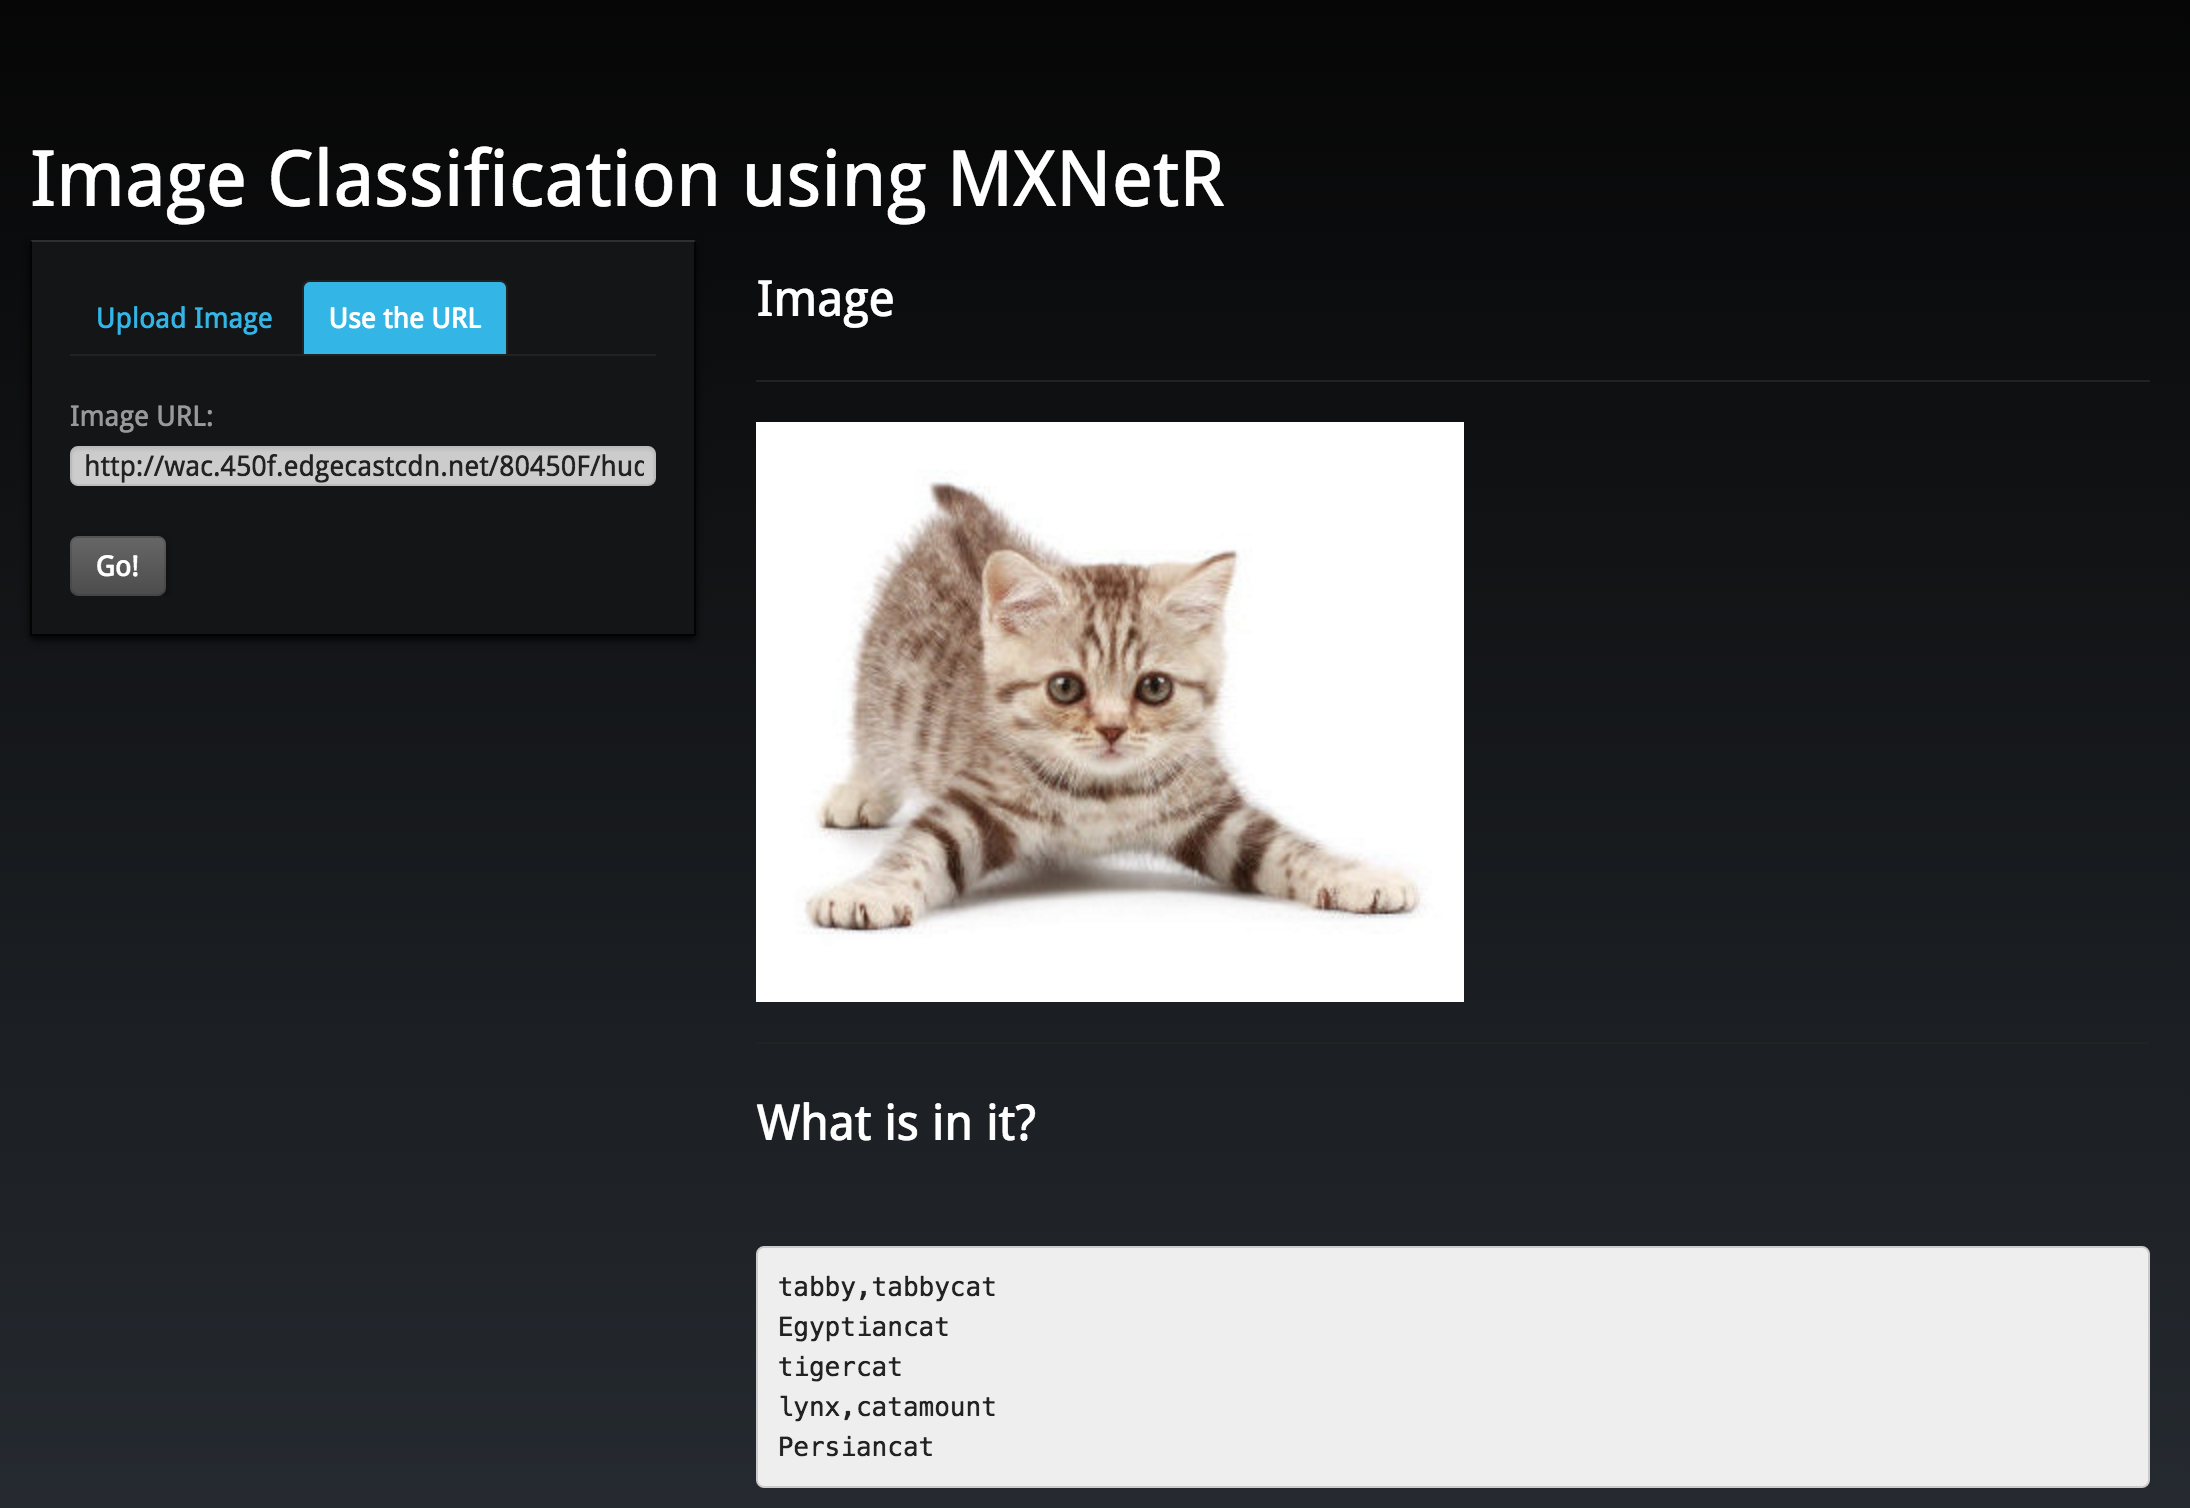 Build Online Image Classification Service with Shiny and MXNetR